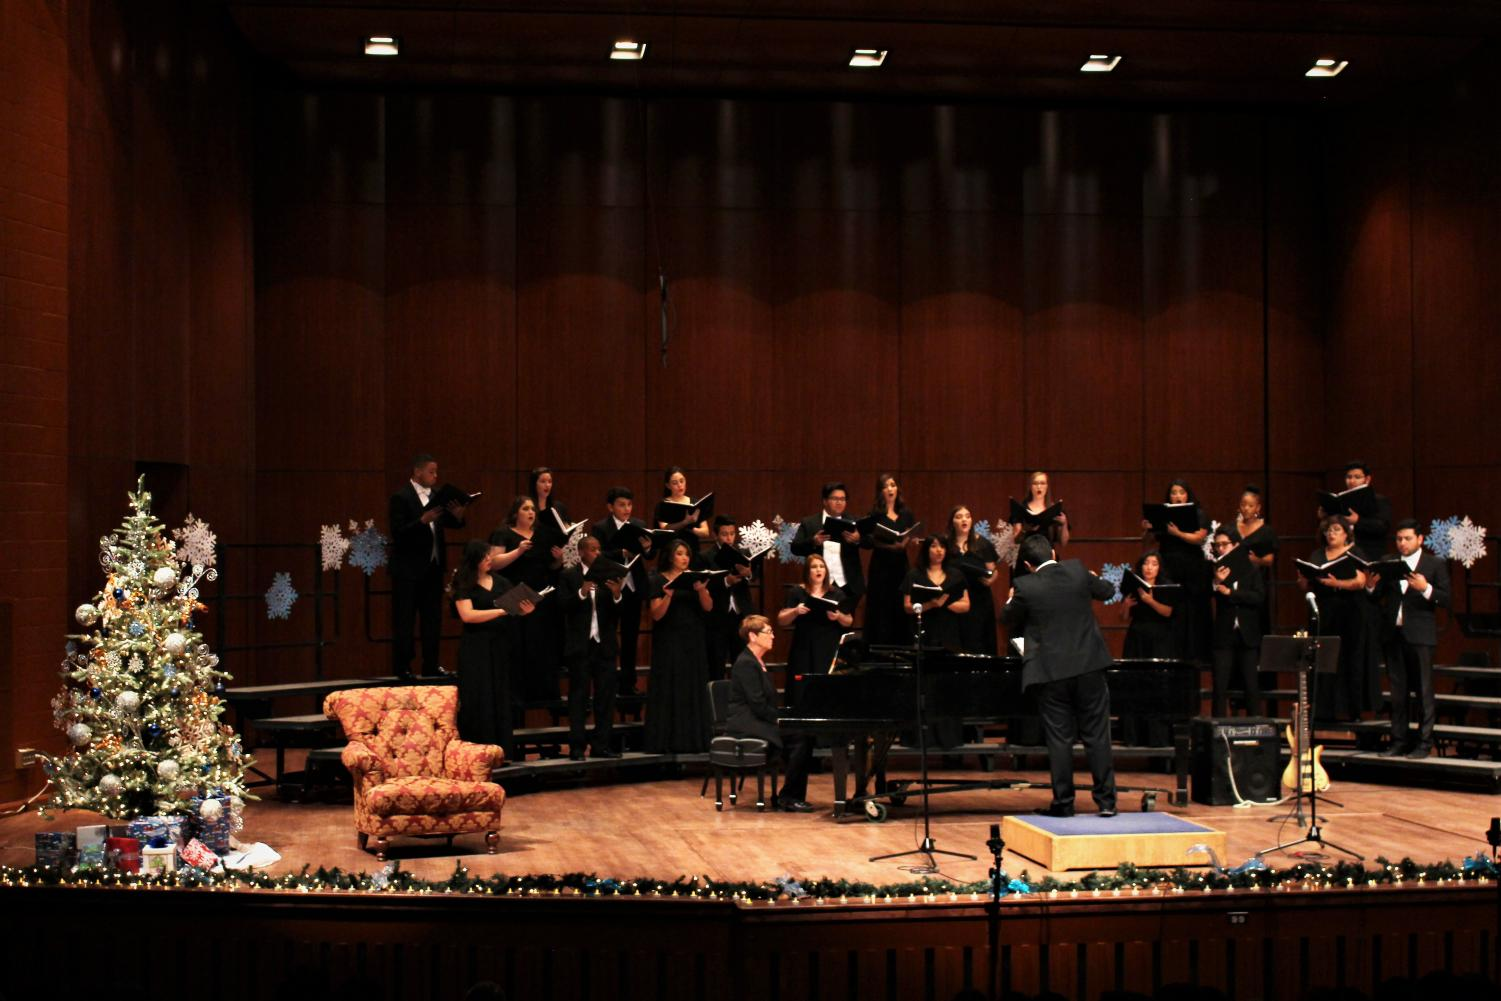 UTEP Choir at Holiday Revels 2018 at Fox Fine Arts Recital Hall on Monday Nov. 19th and 20th.